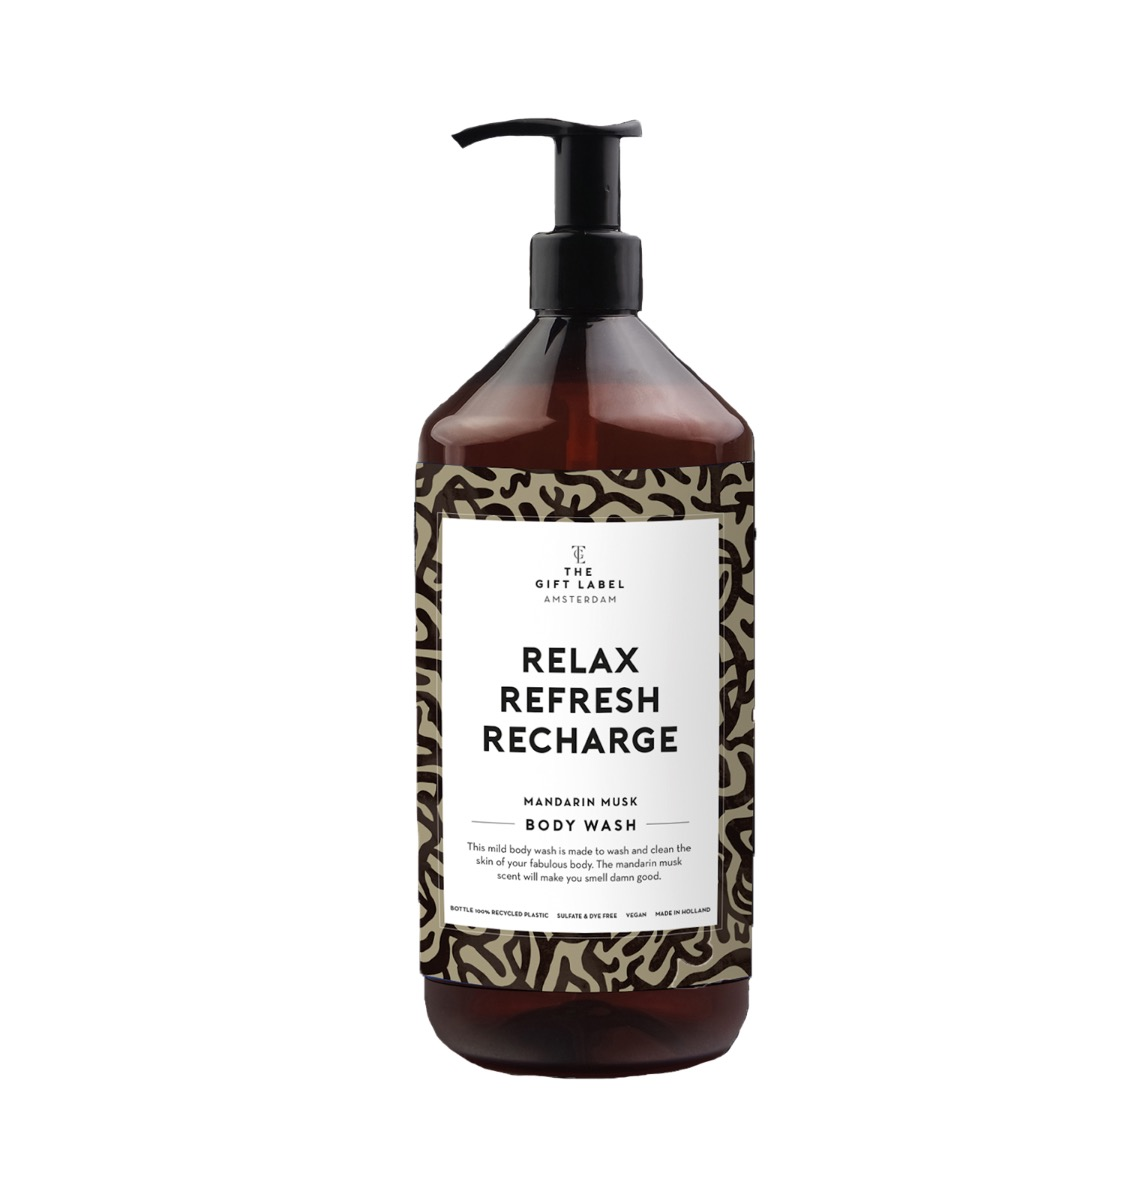 Relax, Refresh and Recharge